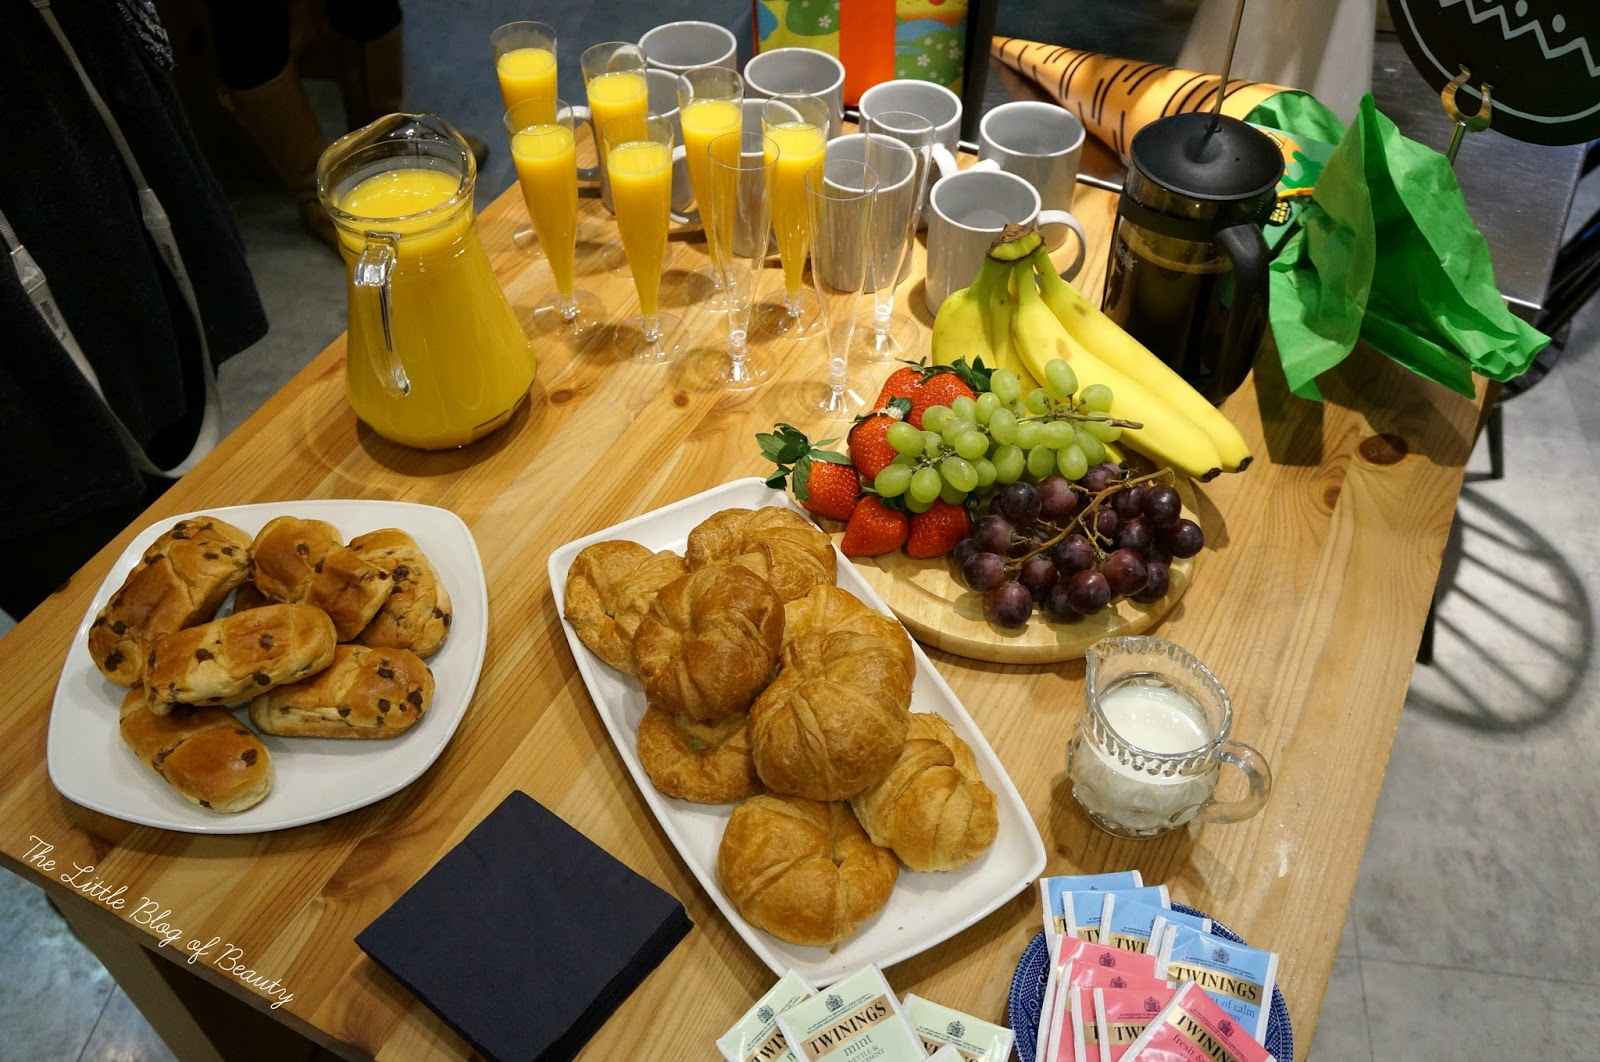 Lush Meadowhall Bloggers Breakfast